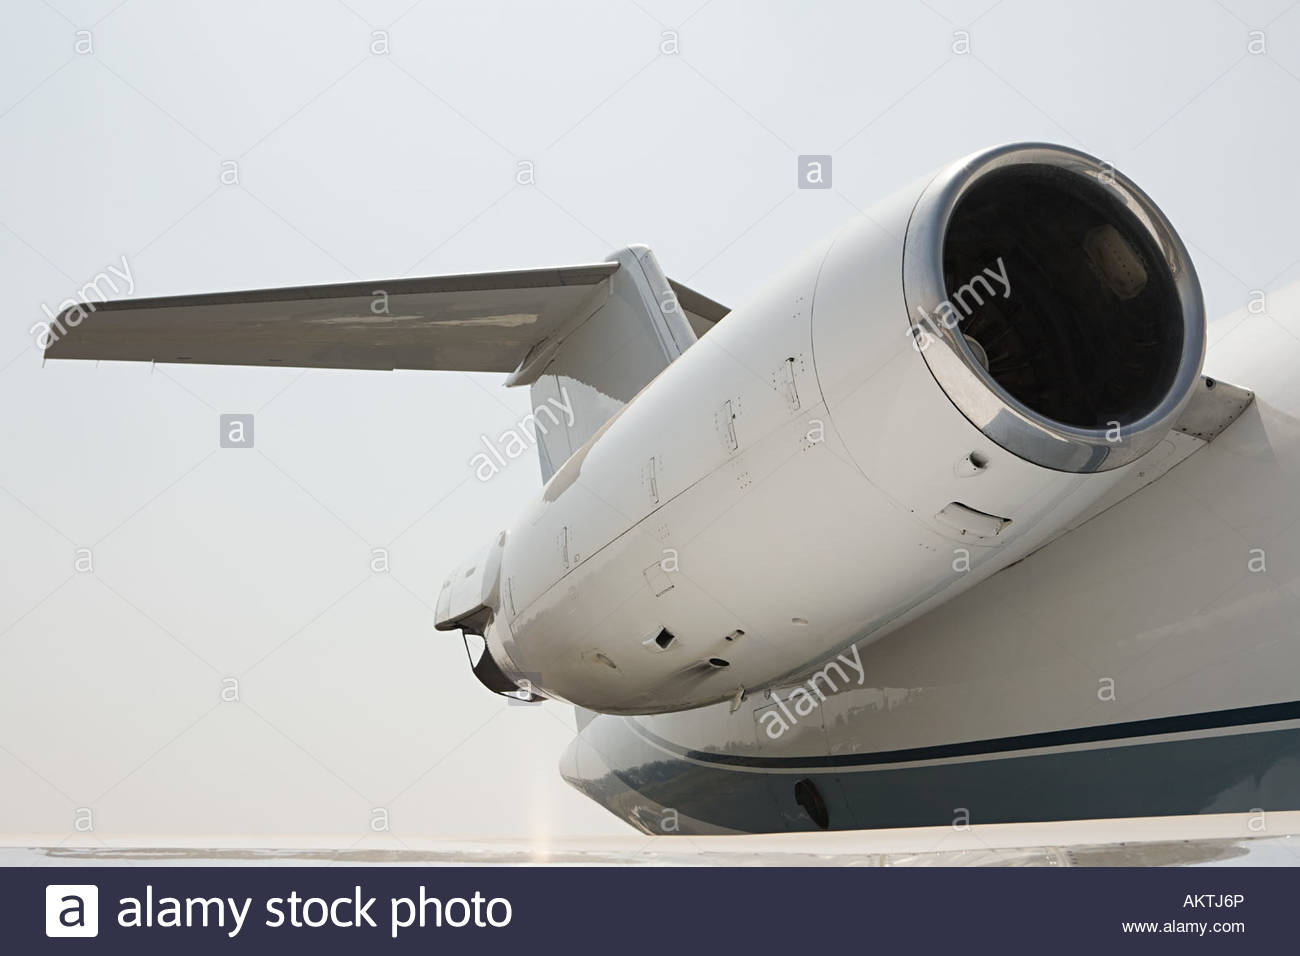 Engine of an private airplane - Stock Image